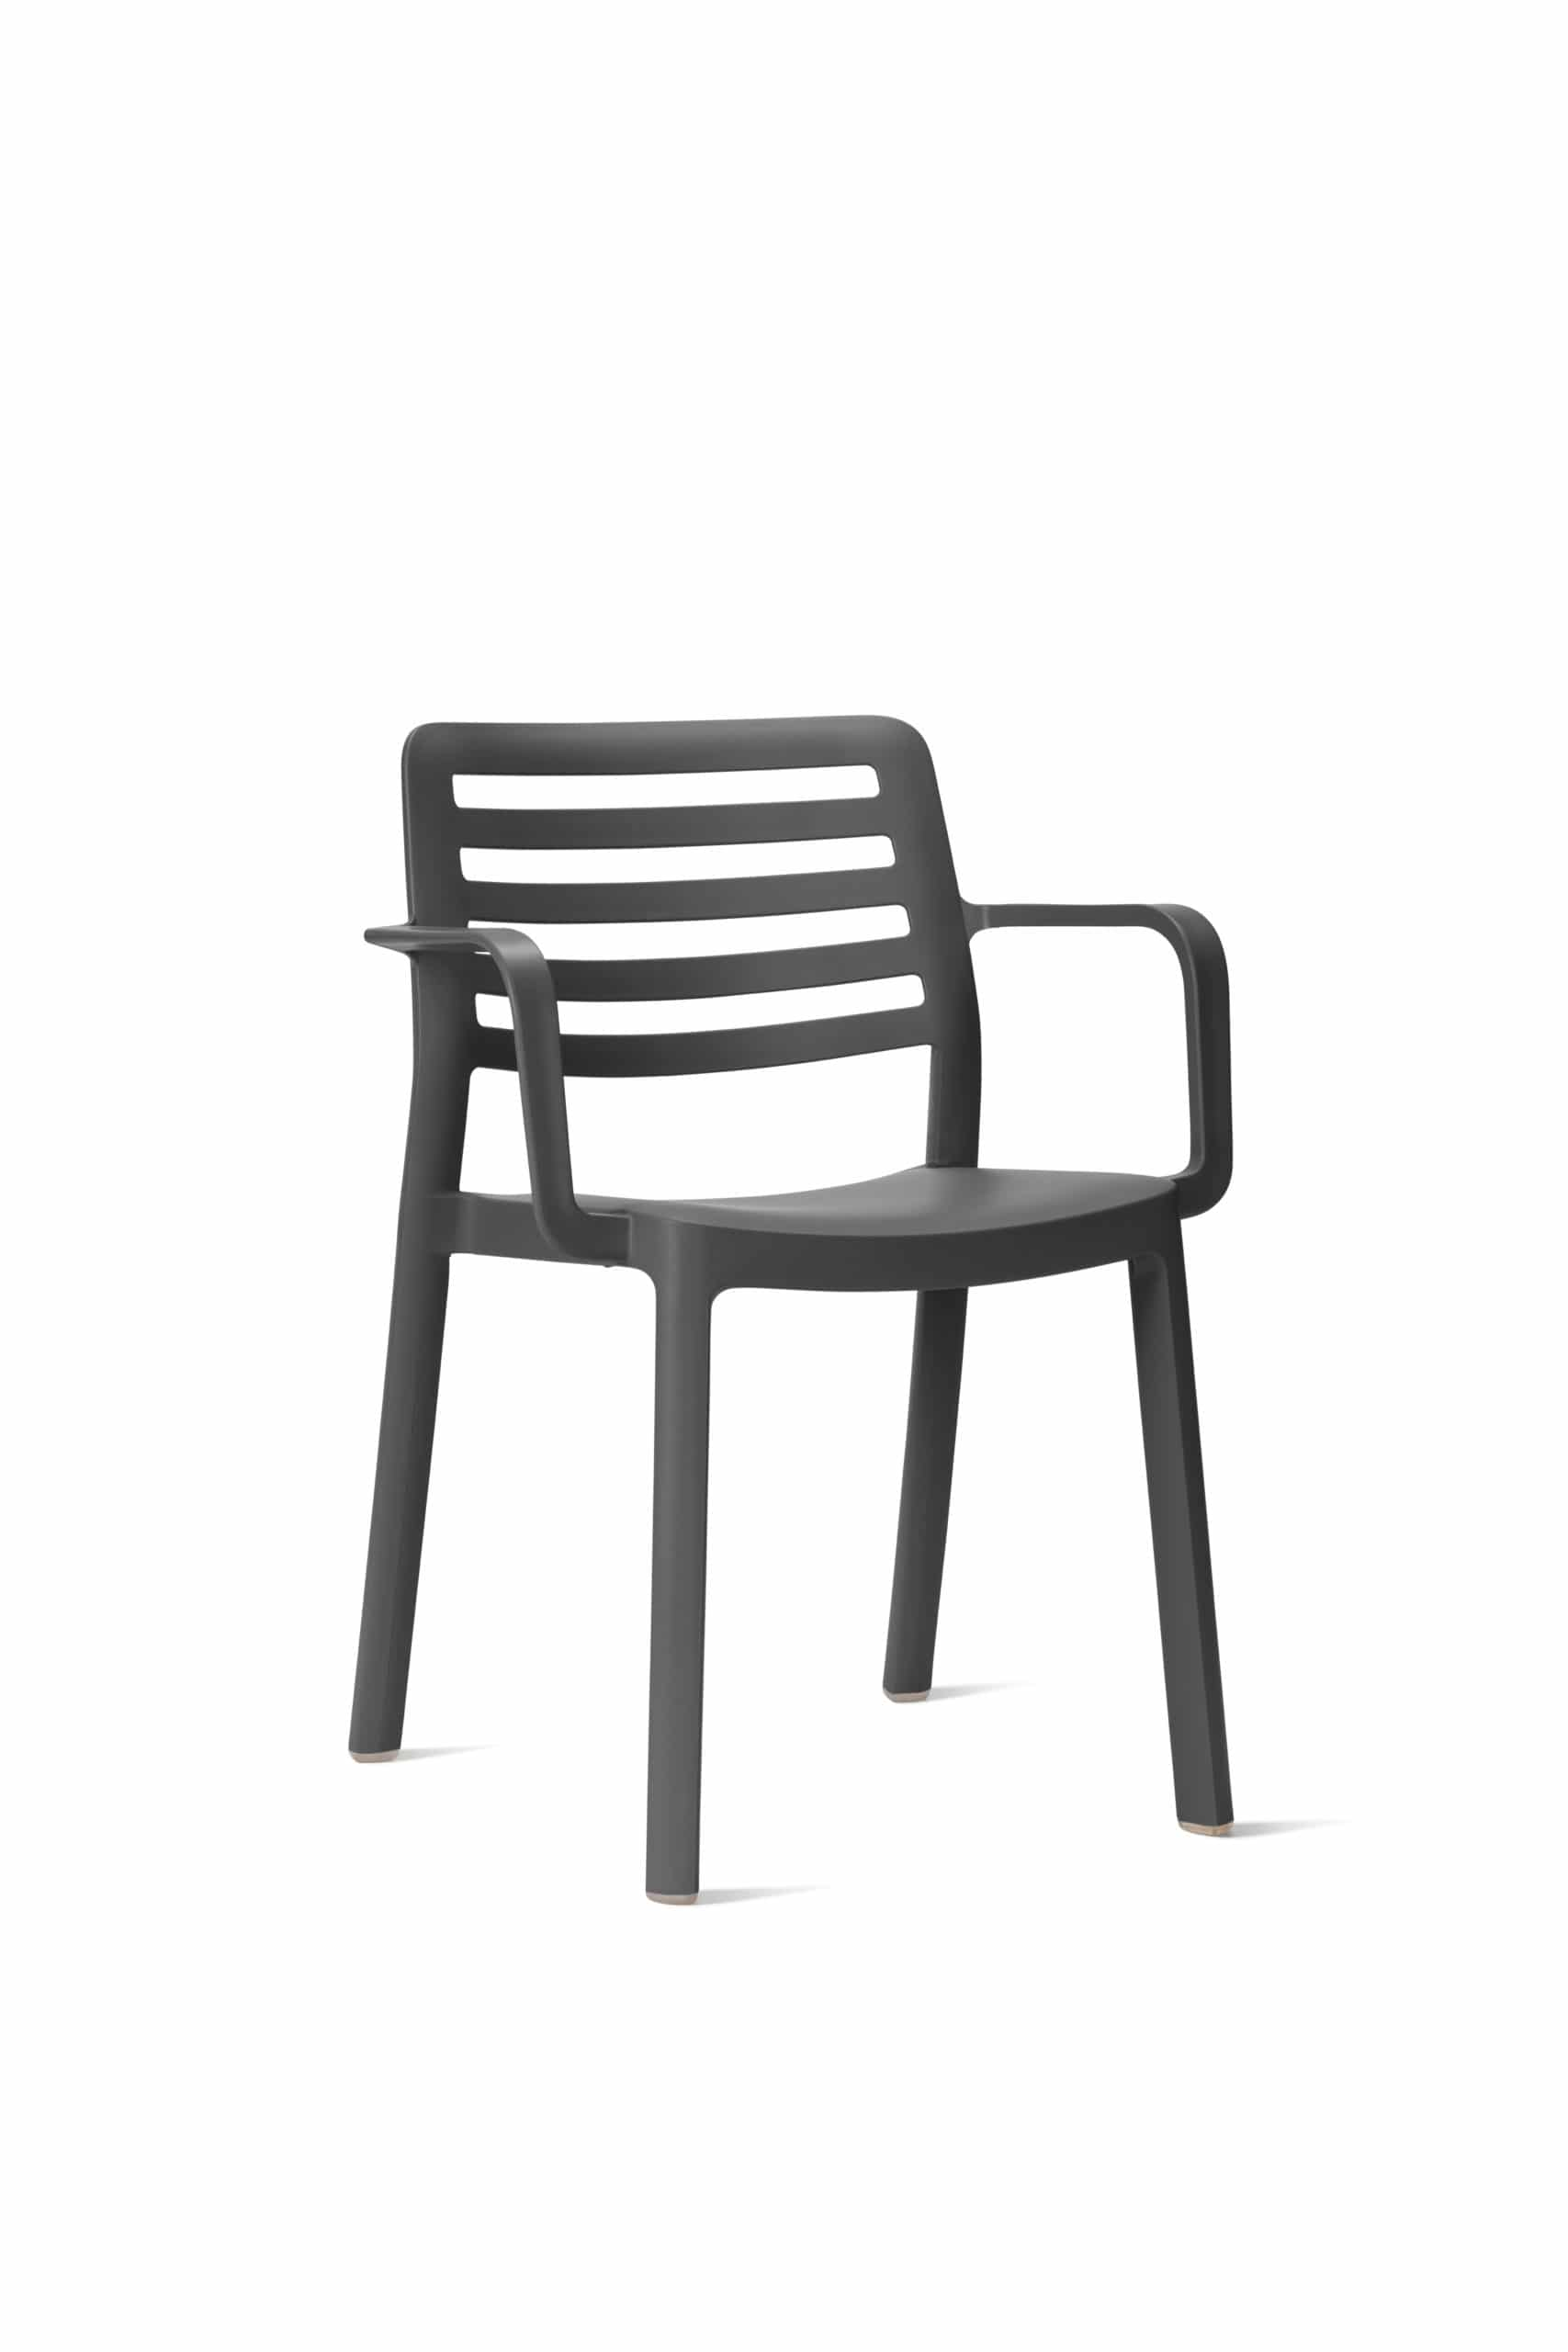 <p>Outdoor Furniture Contemporary Collection – Baca Armchair – Chocolate.</p> <p> </p> <p>Armchair designed for indoor and outdoor use available in a variety of colours, stackable, capturing essential features such as lightness, stability, functionality, ergonomics and care for the environment.</p>